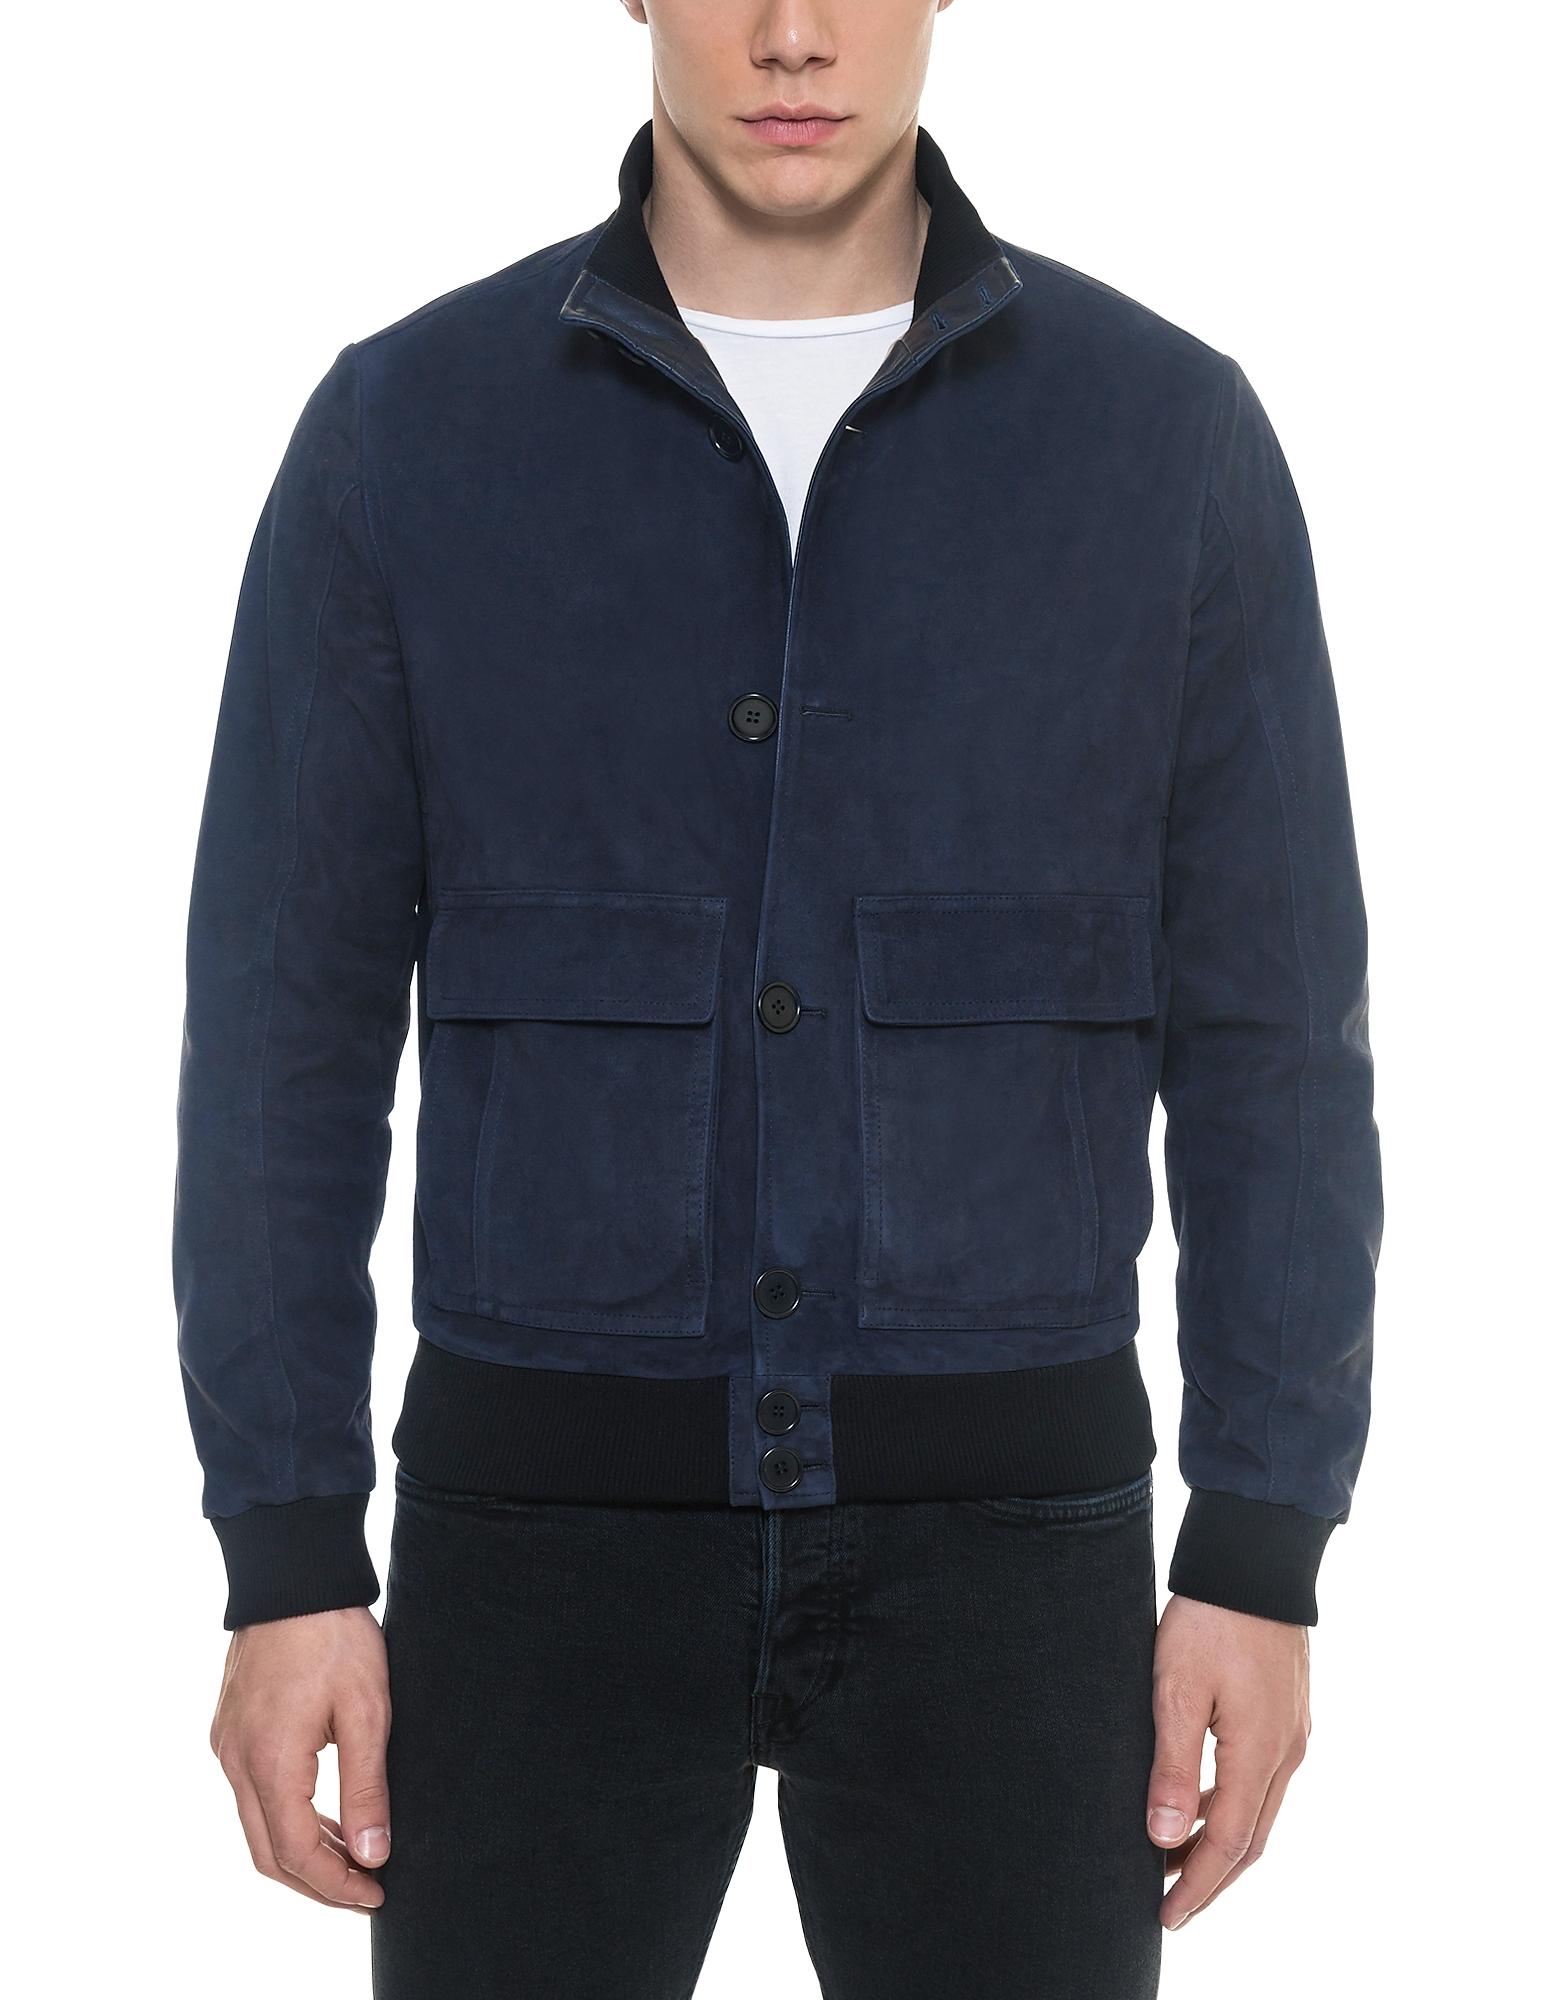 Image of Forzieri Designer Leather Jackets, Midnight Blue Suede Men's Bomber Jacket